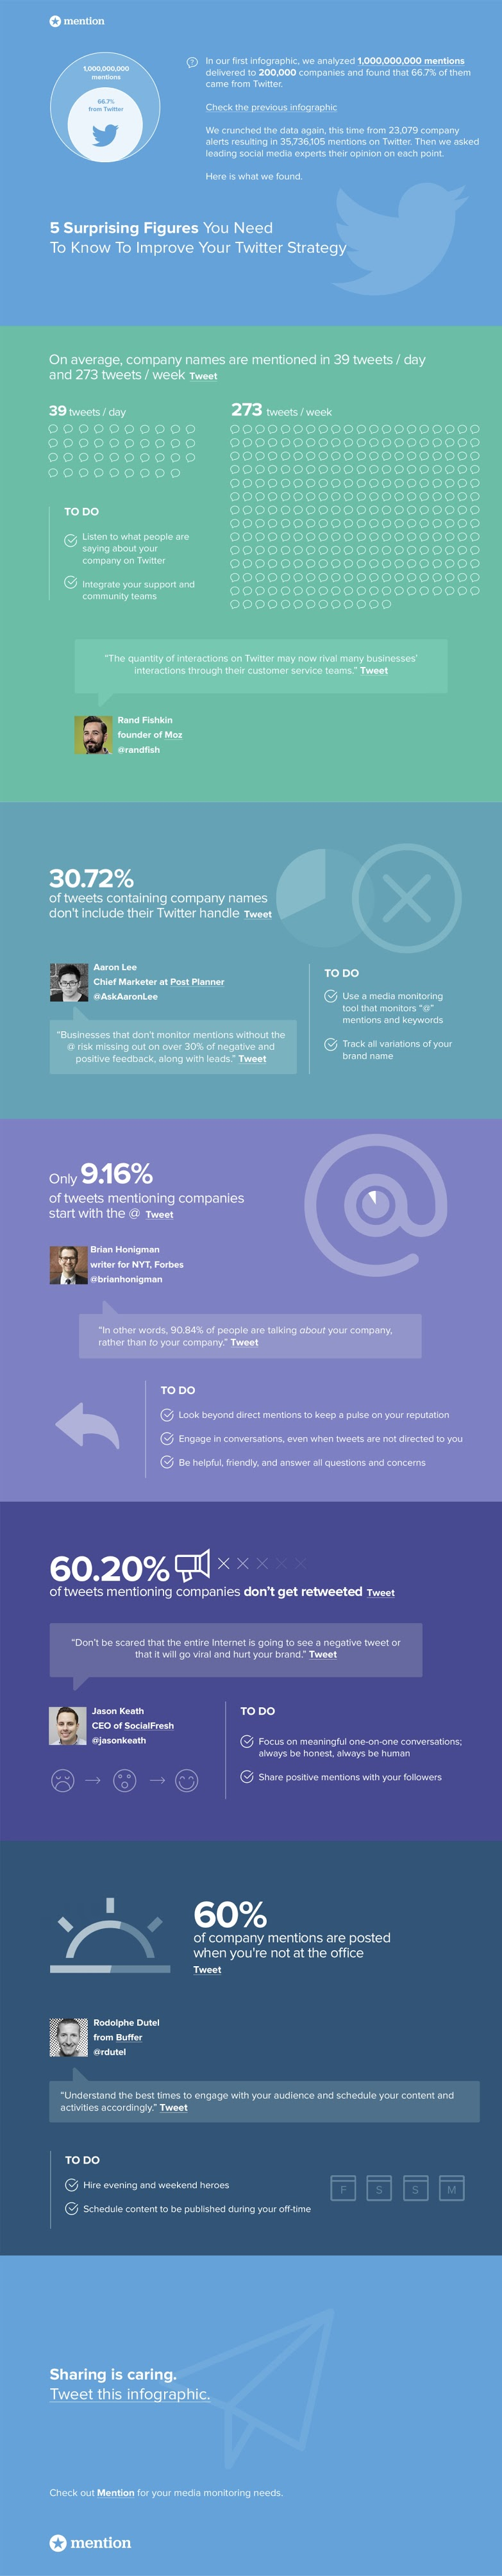 Improve Your Twitter Strategy With These 5 Surprising Figures - infographic